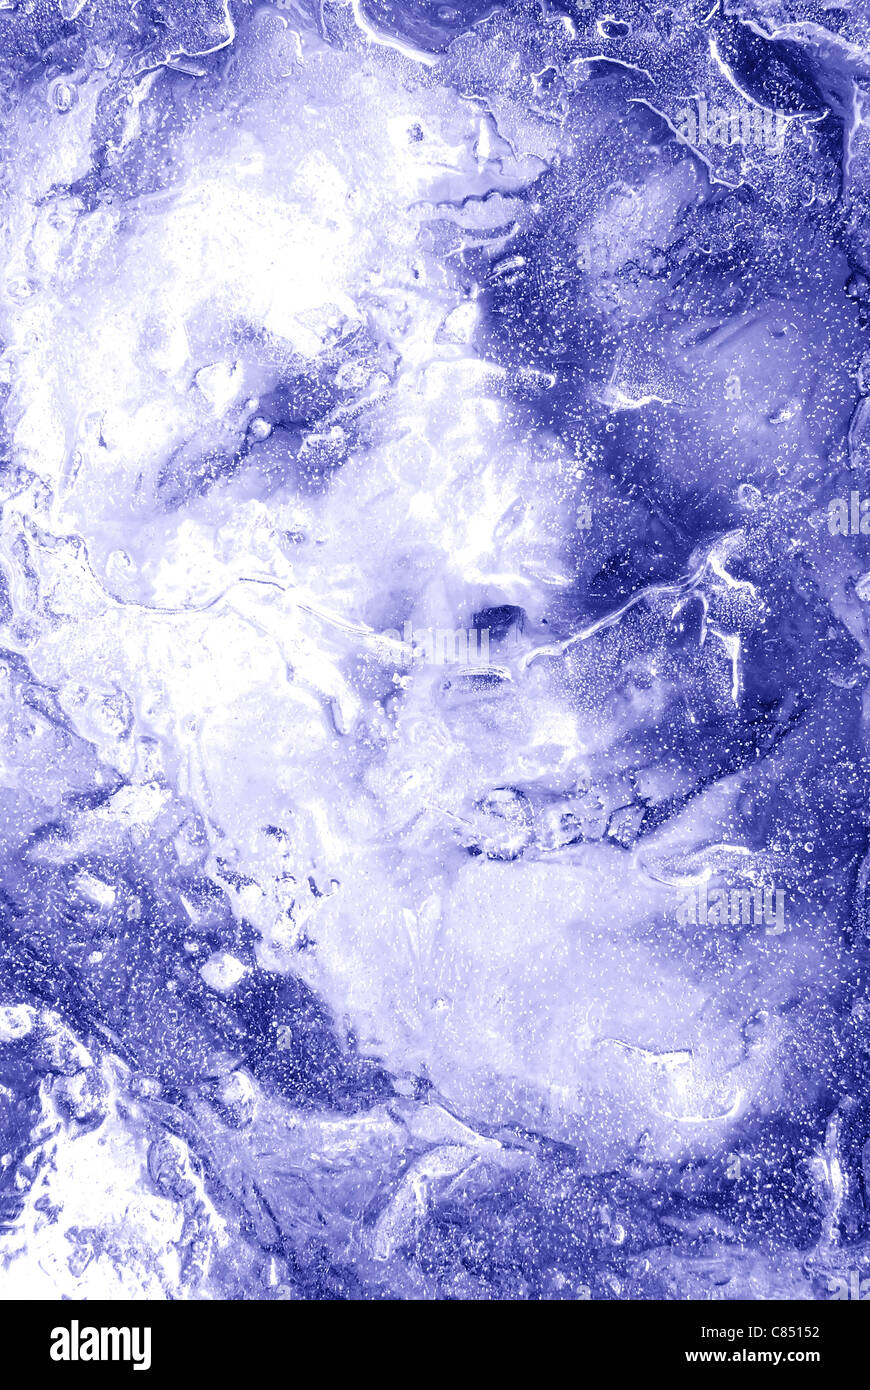 Frozen man - Stock Image